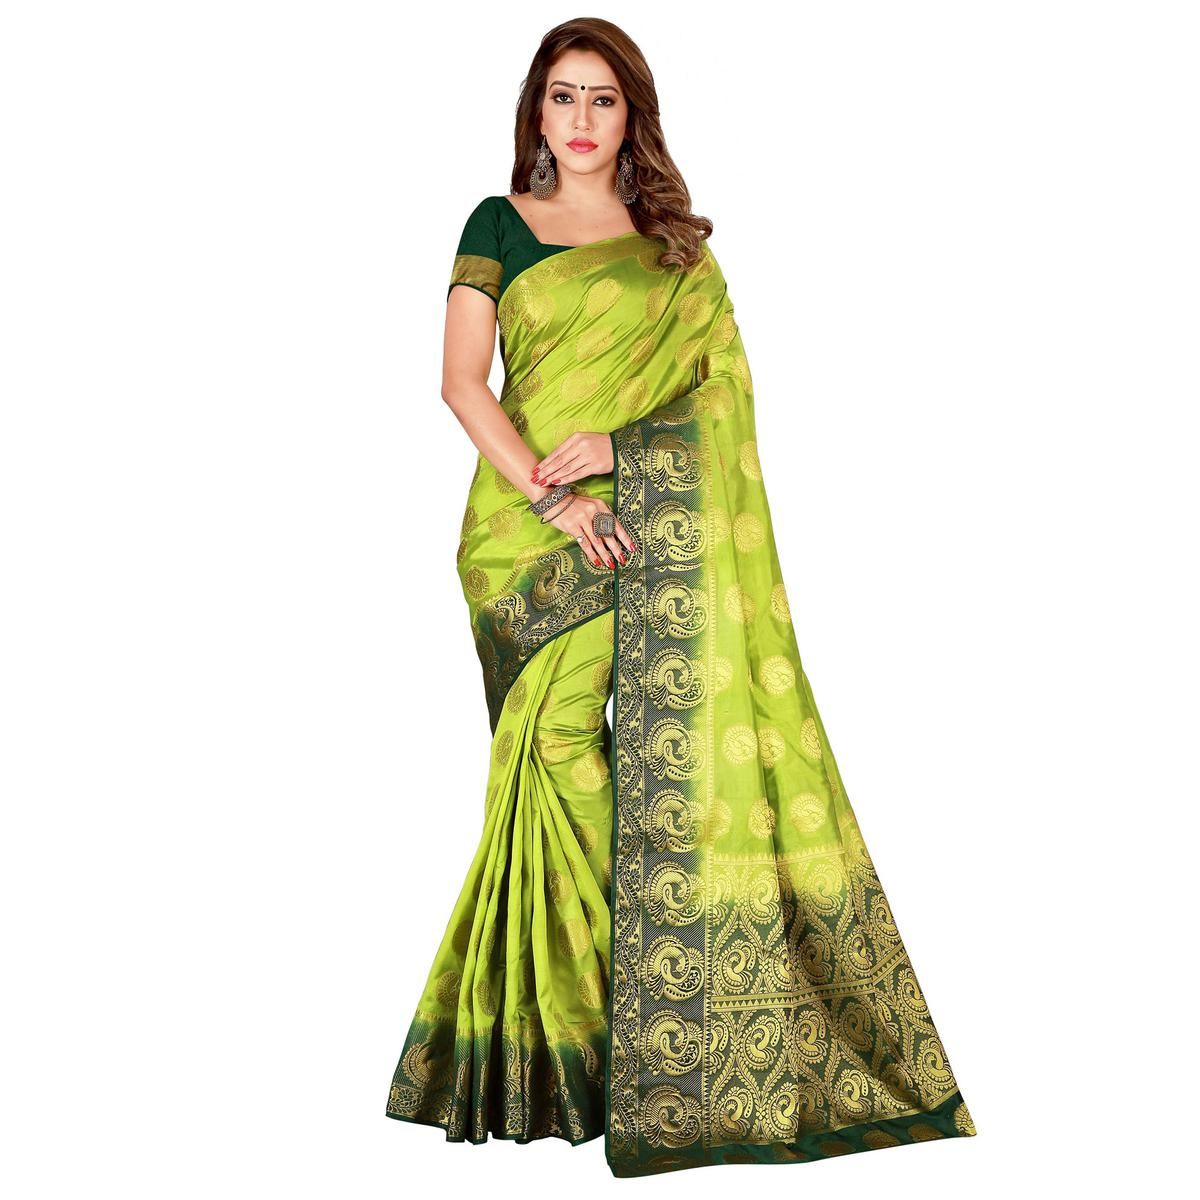 Intricate Pista Green Colored Festive Wear Woven Cotton Silk Saree